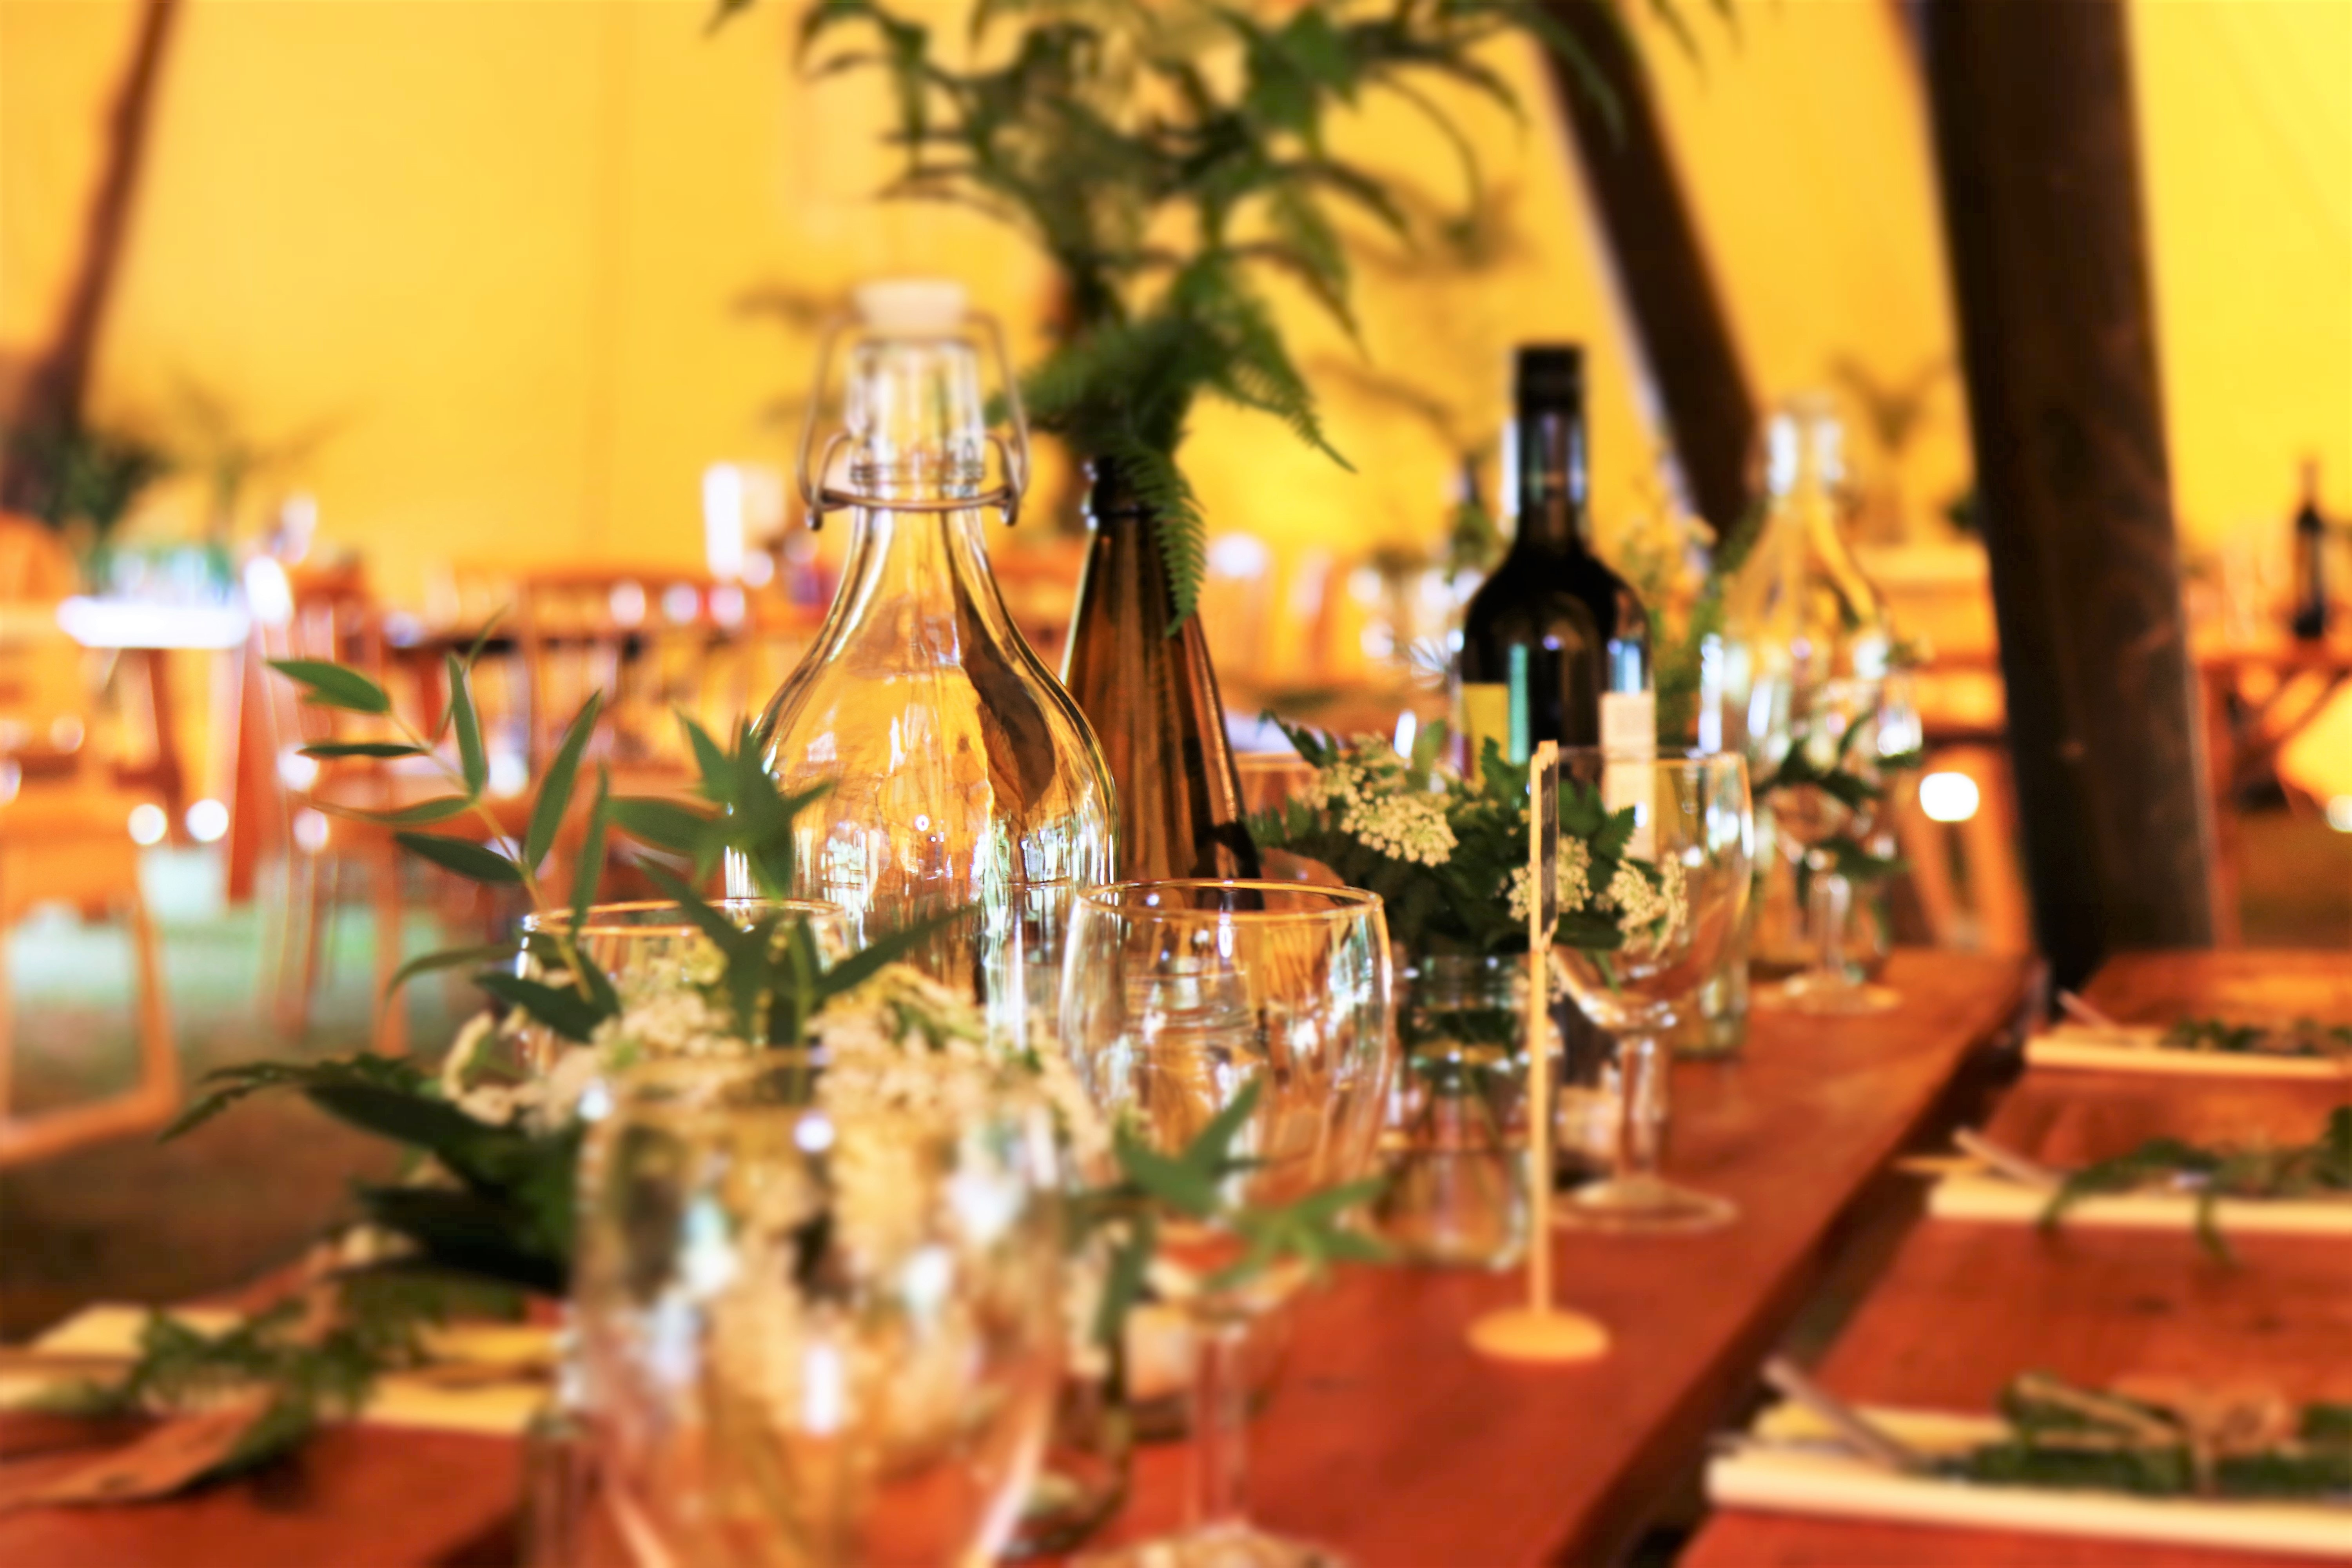 WE PROVIDE VIP PARTY ORGANIZATION SERVICES, INCLUDING ORGANIZING LUXURY PARTIES 6